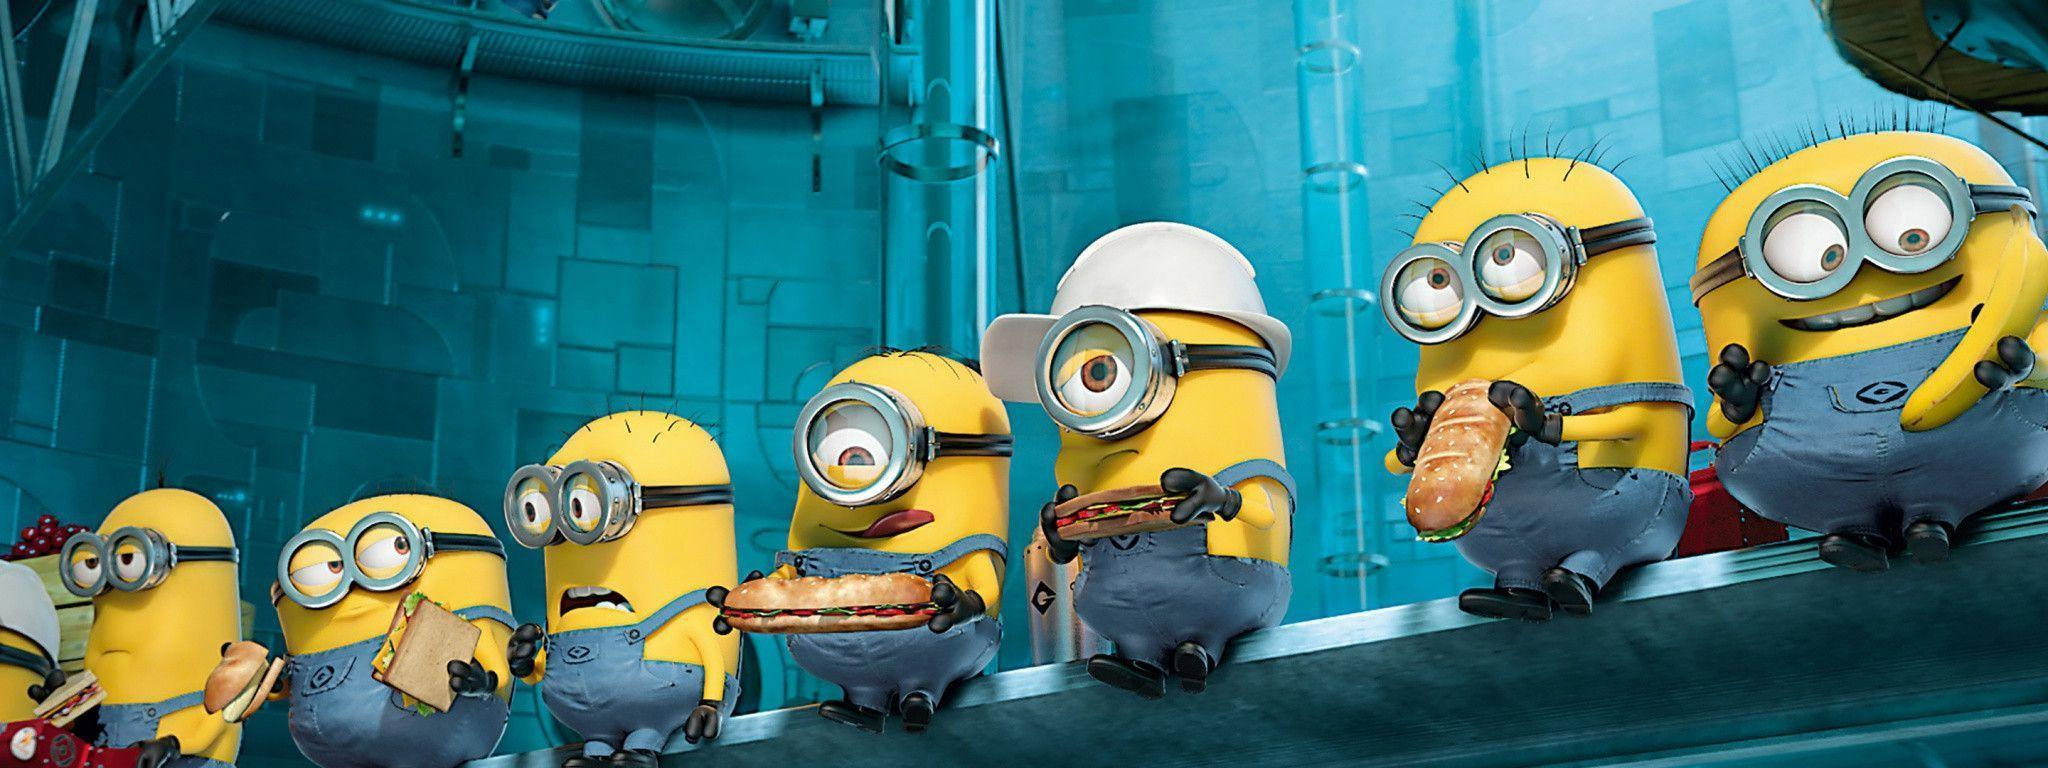 despicable me minions wallpapers - photo #19